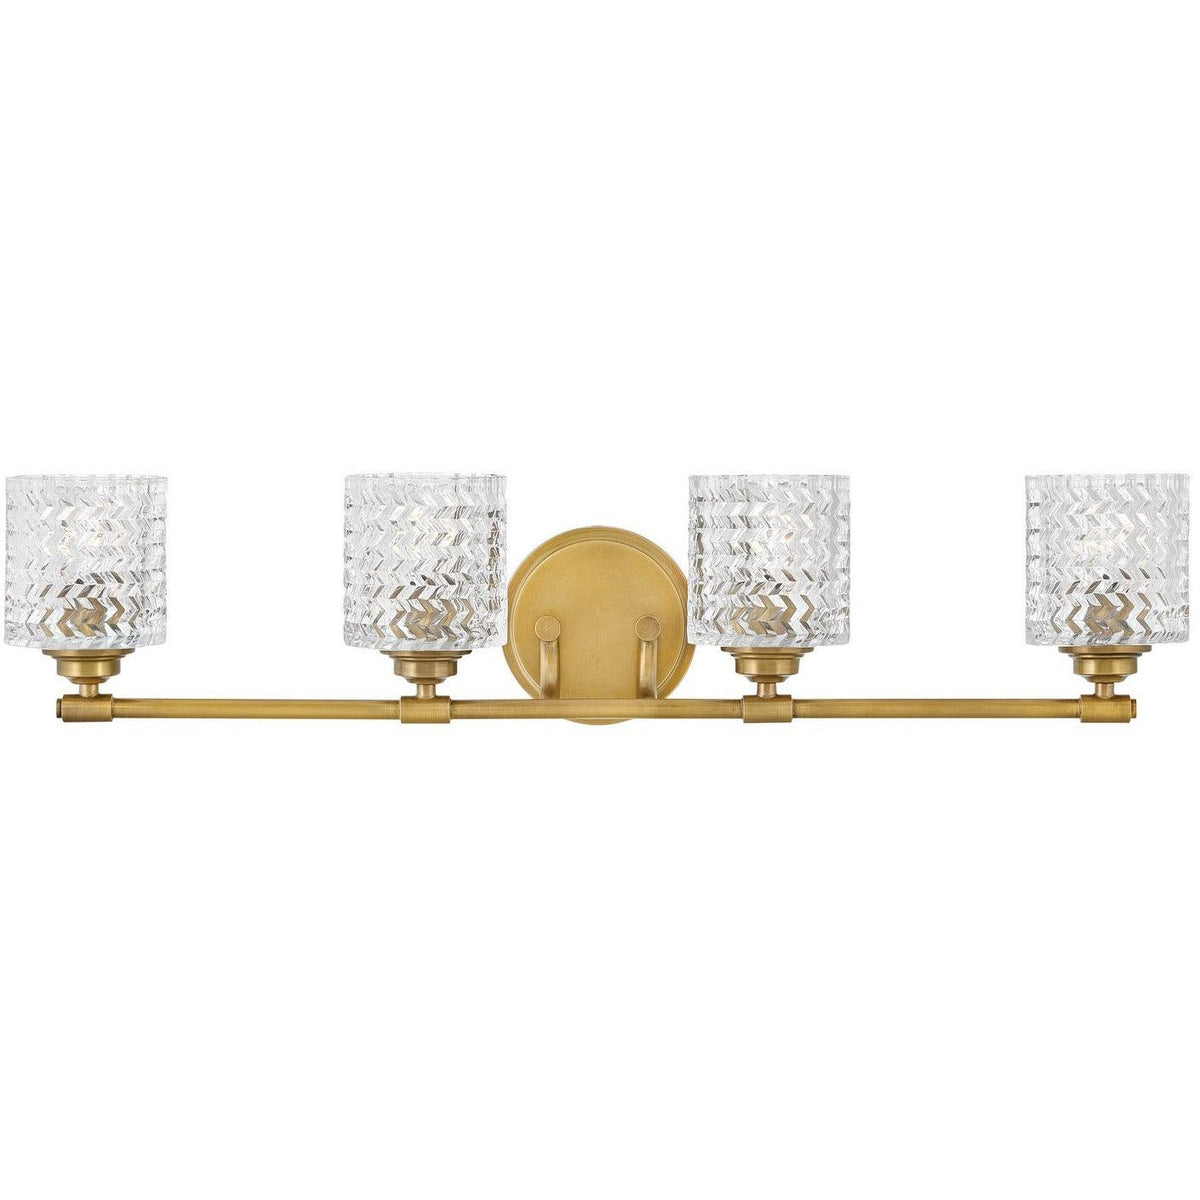 Hinkley Canada - 5044HB - Four Light Bath - Elle - Heritage Brass